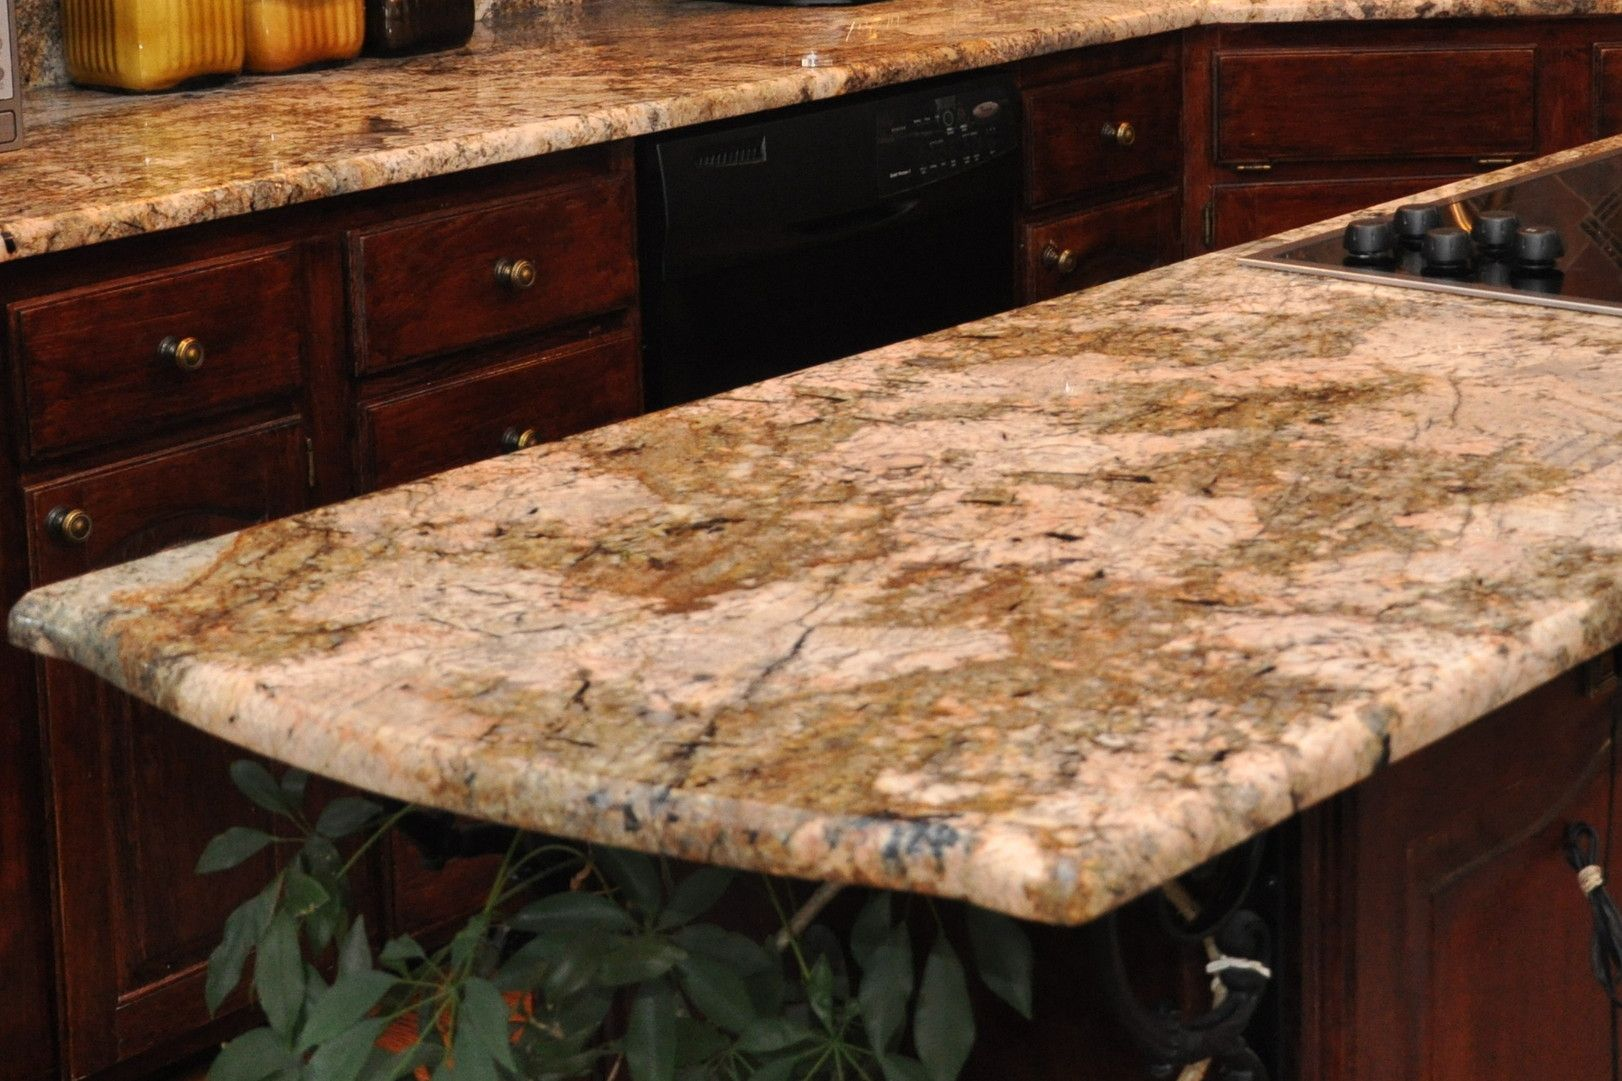 Granite Countertop With A Demi Bullnose Edge Granite Countertop Edges Granite Countertops Kitchen Remodel Countertops